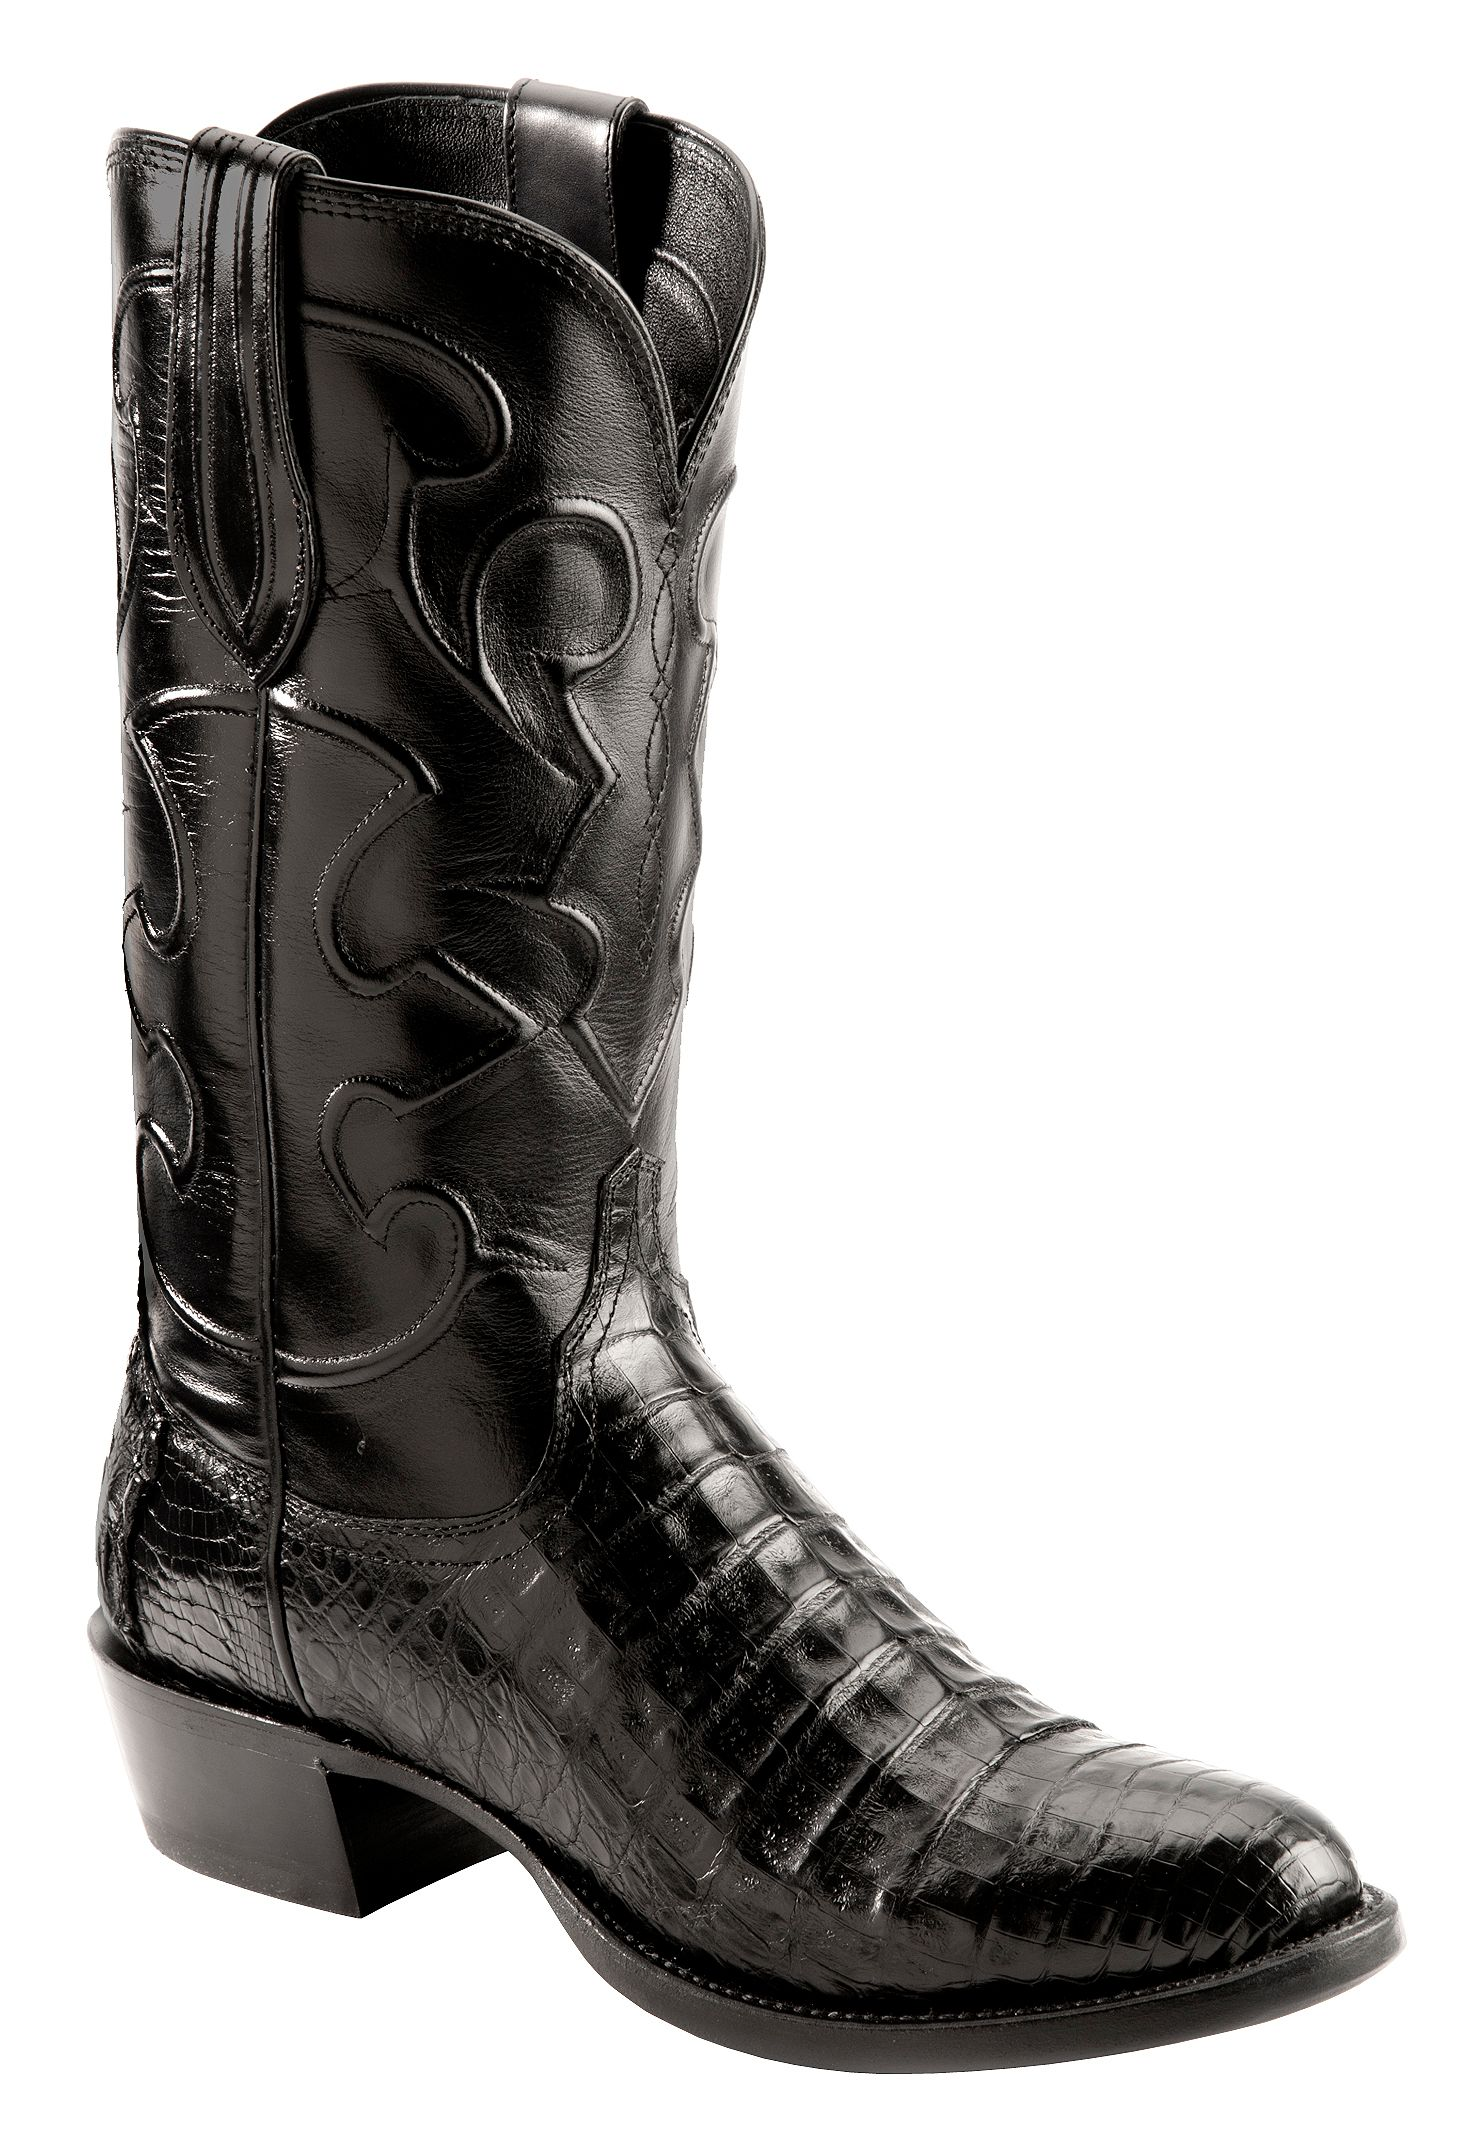 Lucchese Handmade 1883 Black Crocodile Belly Cowboy Boots